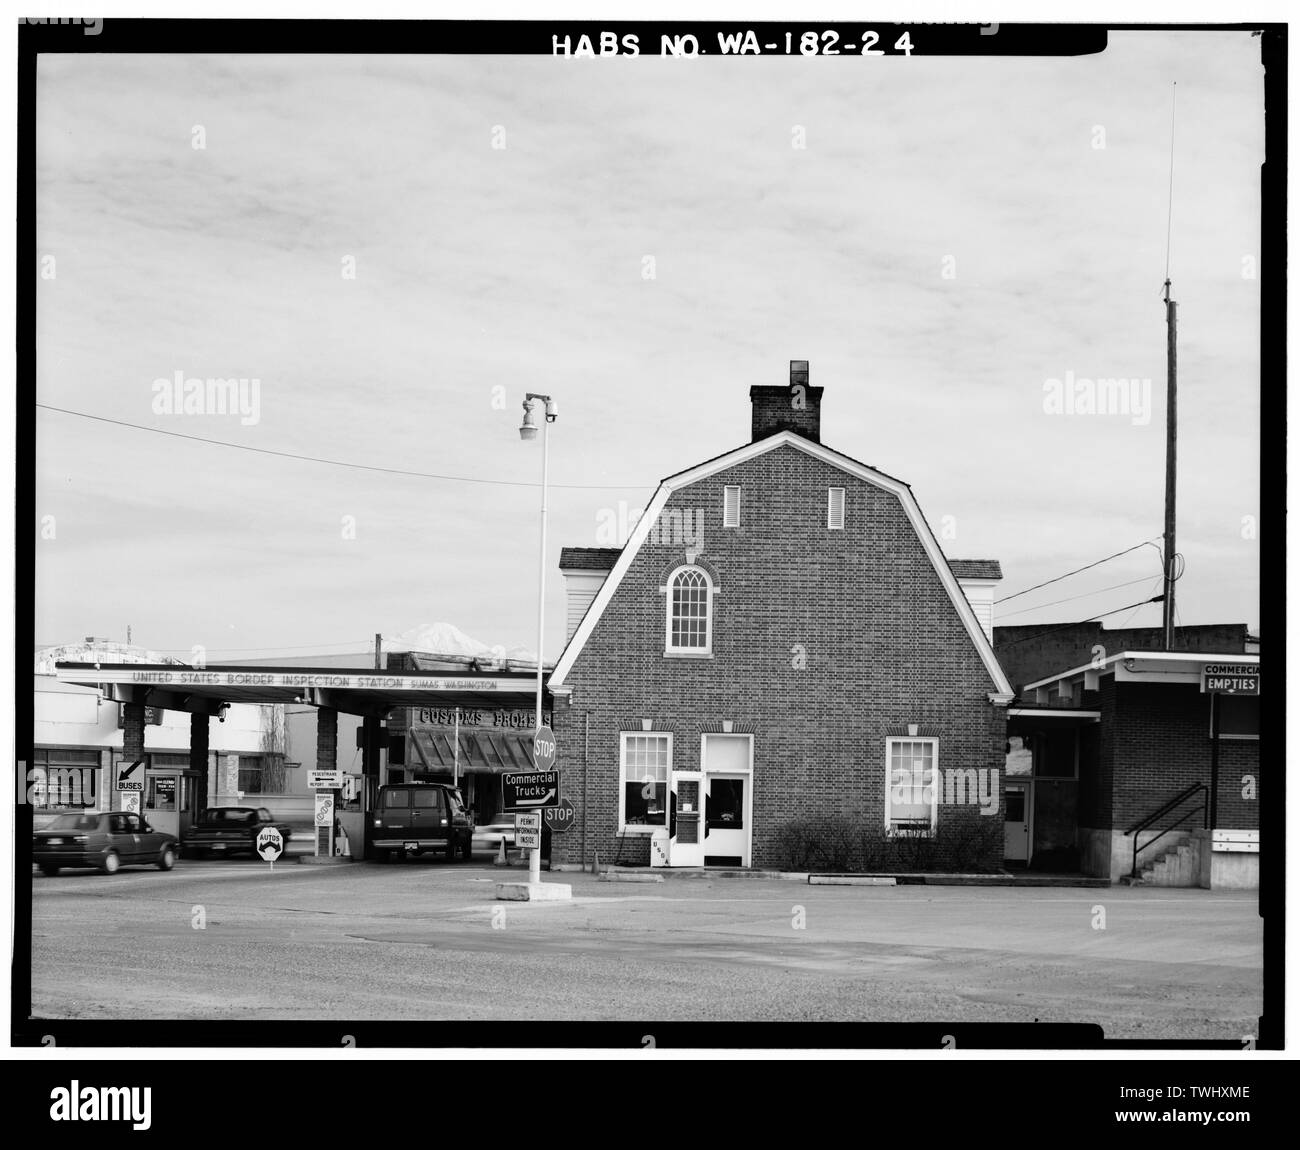 Whatcom County Black and White Stock Photos & Images - Alamy